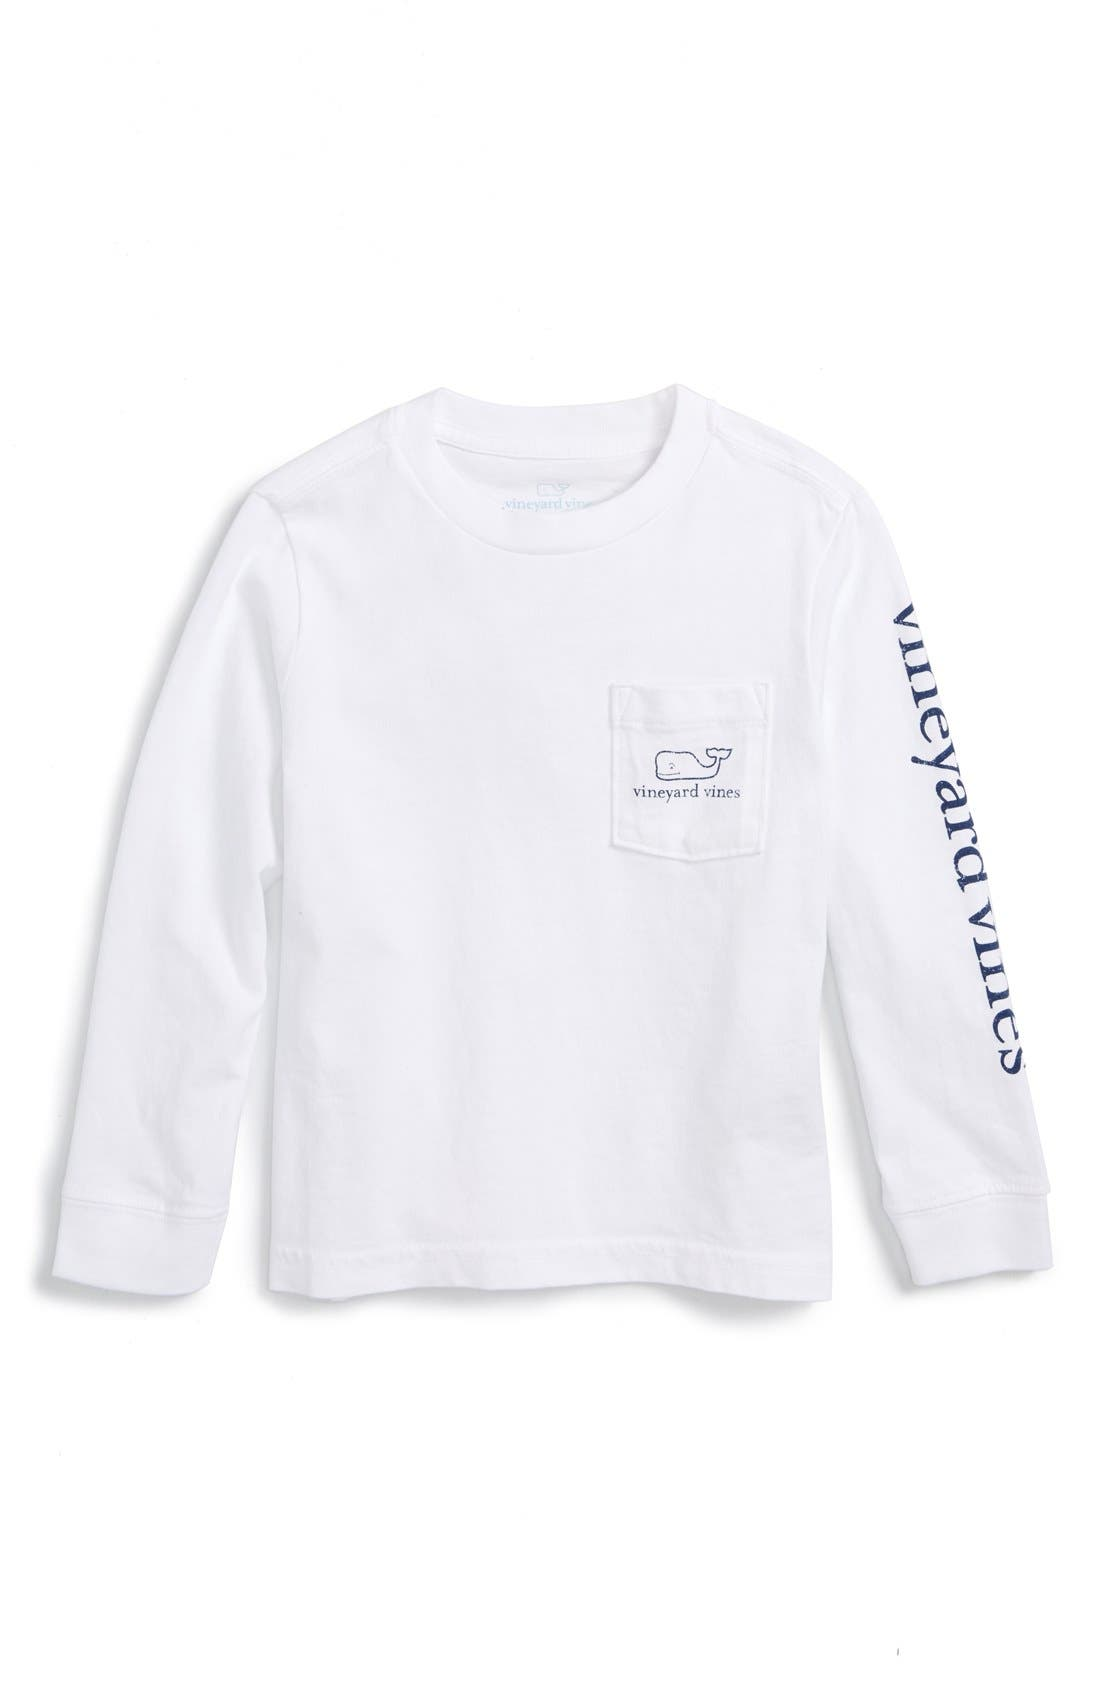 Main Image - vineyard vines Vintage Whale Graphic Long Sleeve T-Shirt (Toddler Boys & Little Boys)